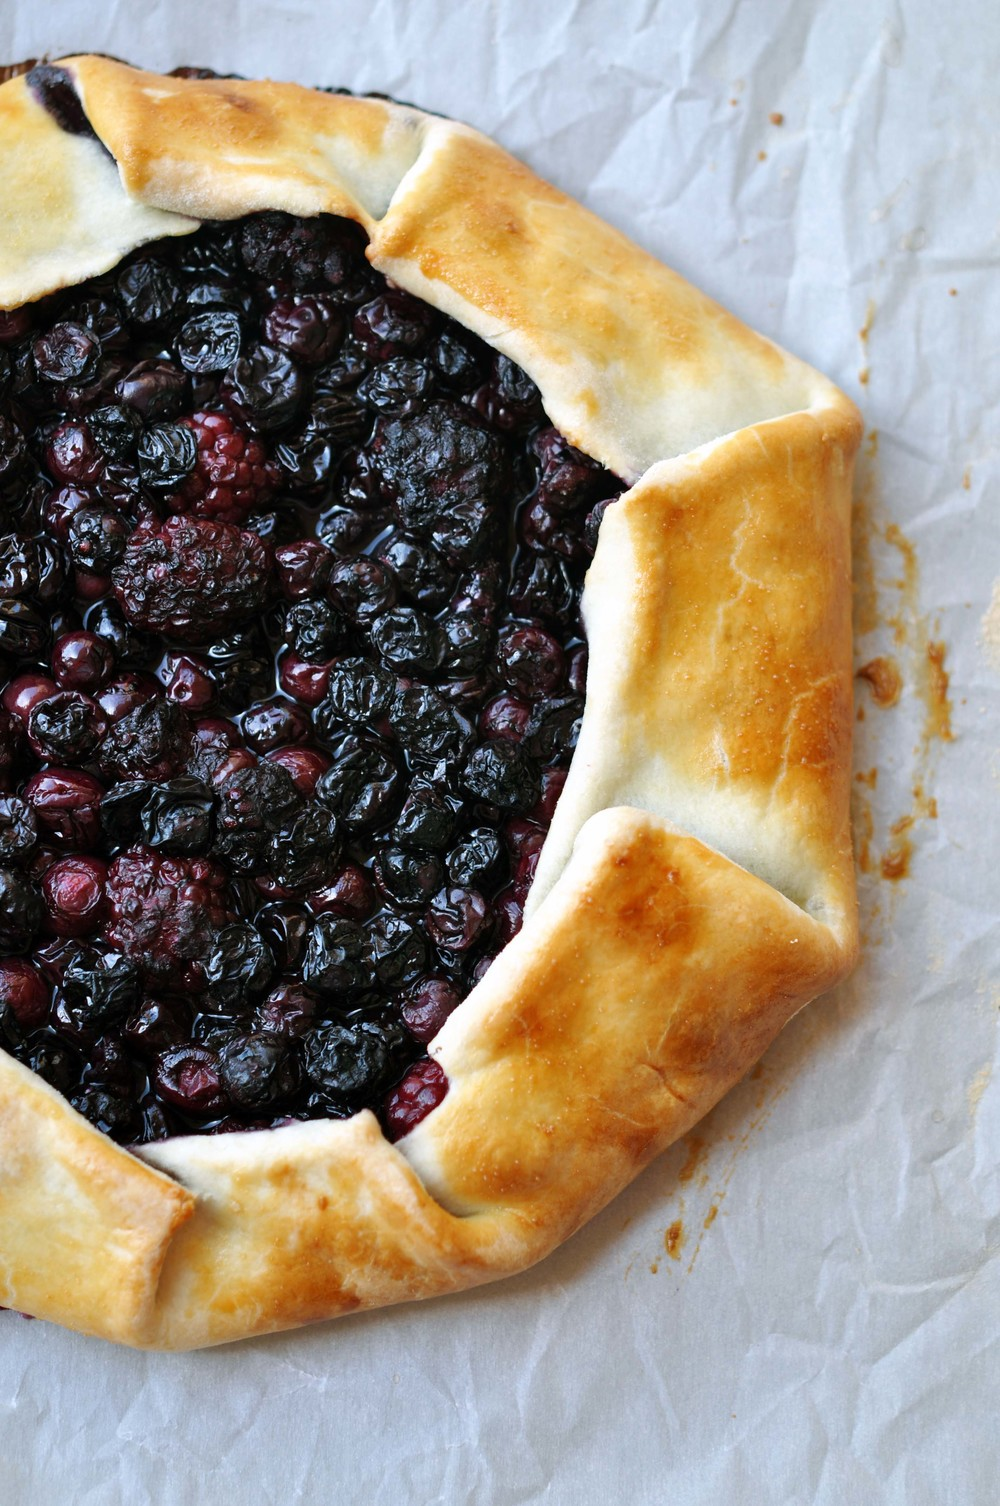 Blueberry & Blackberry Galette